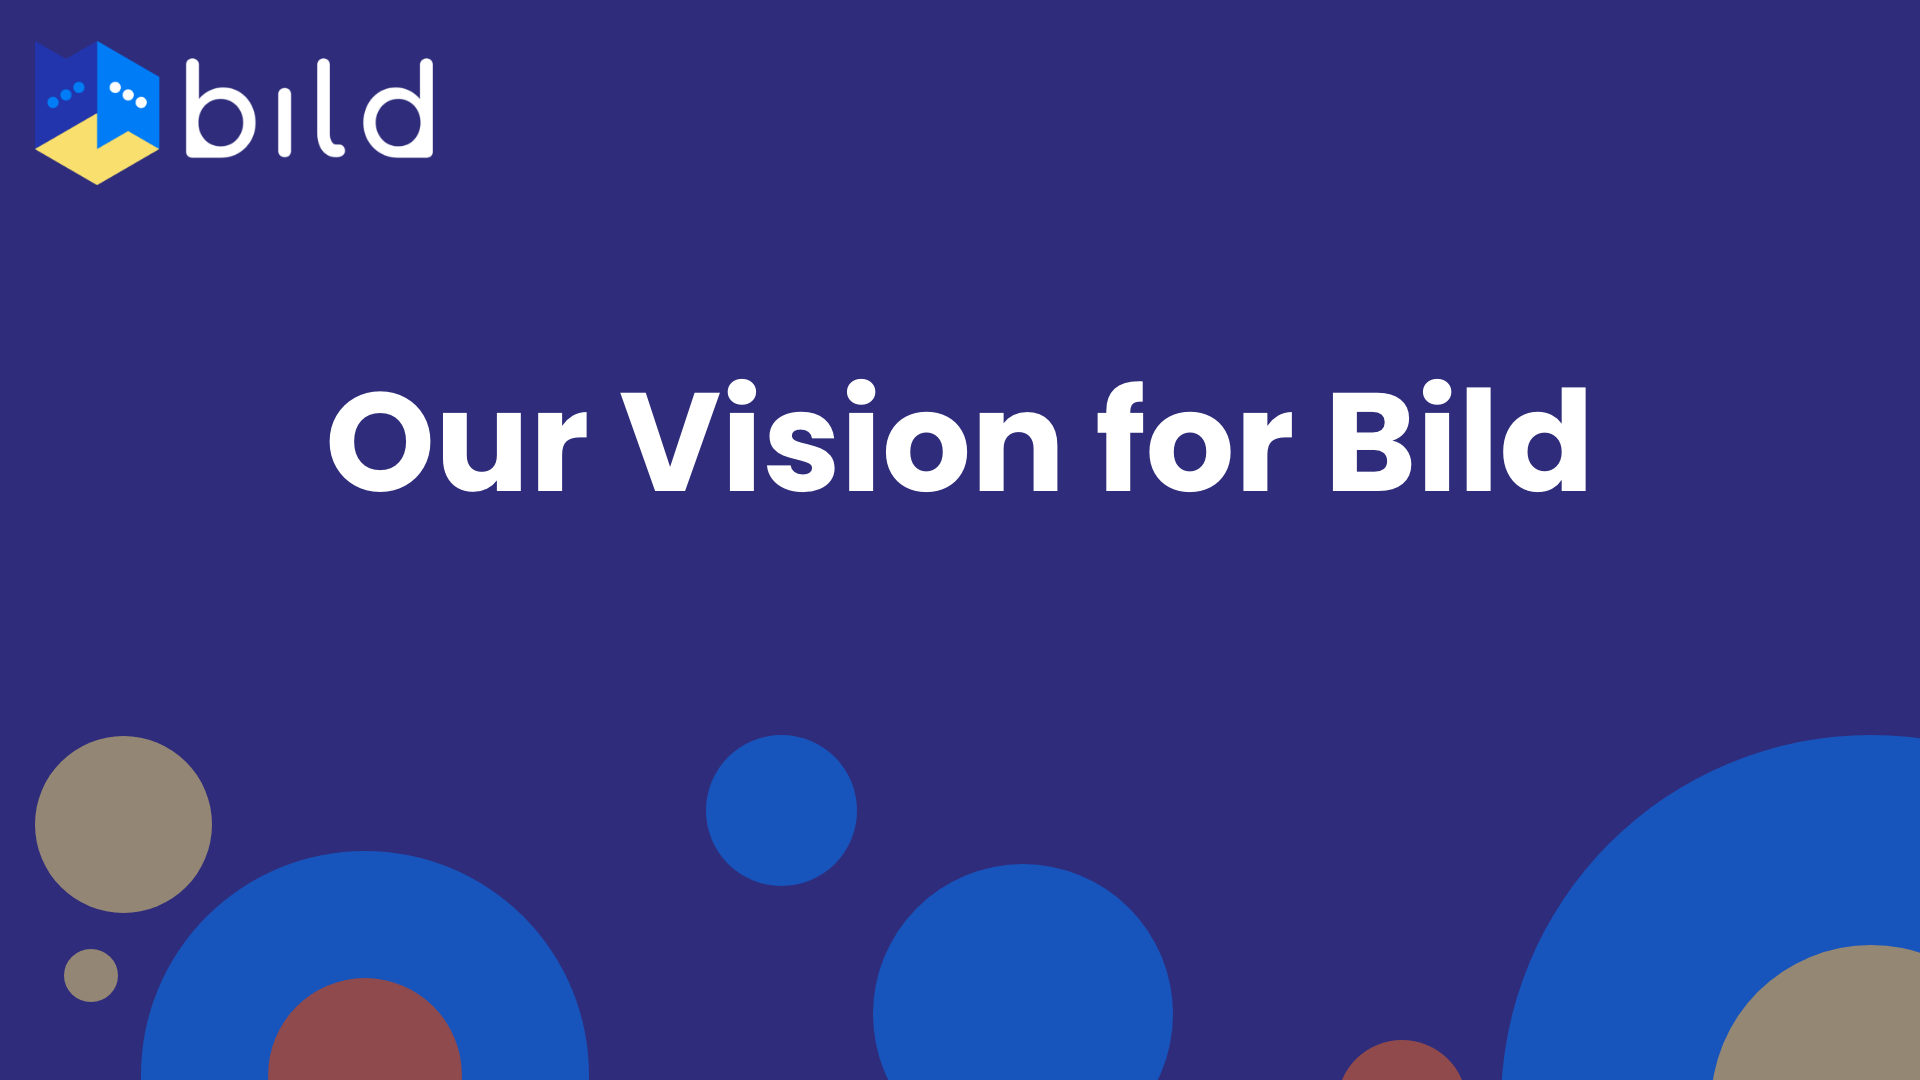 Our Vision for Bild